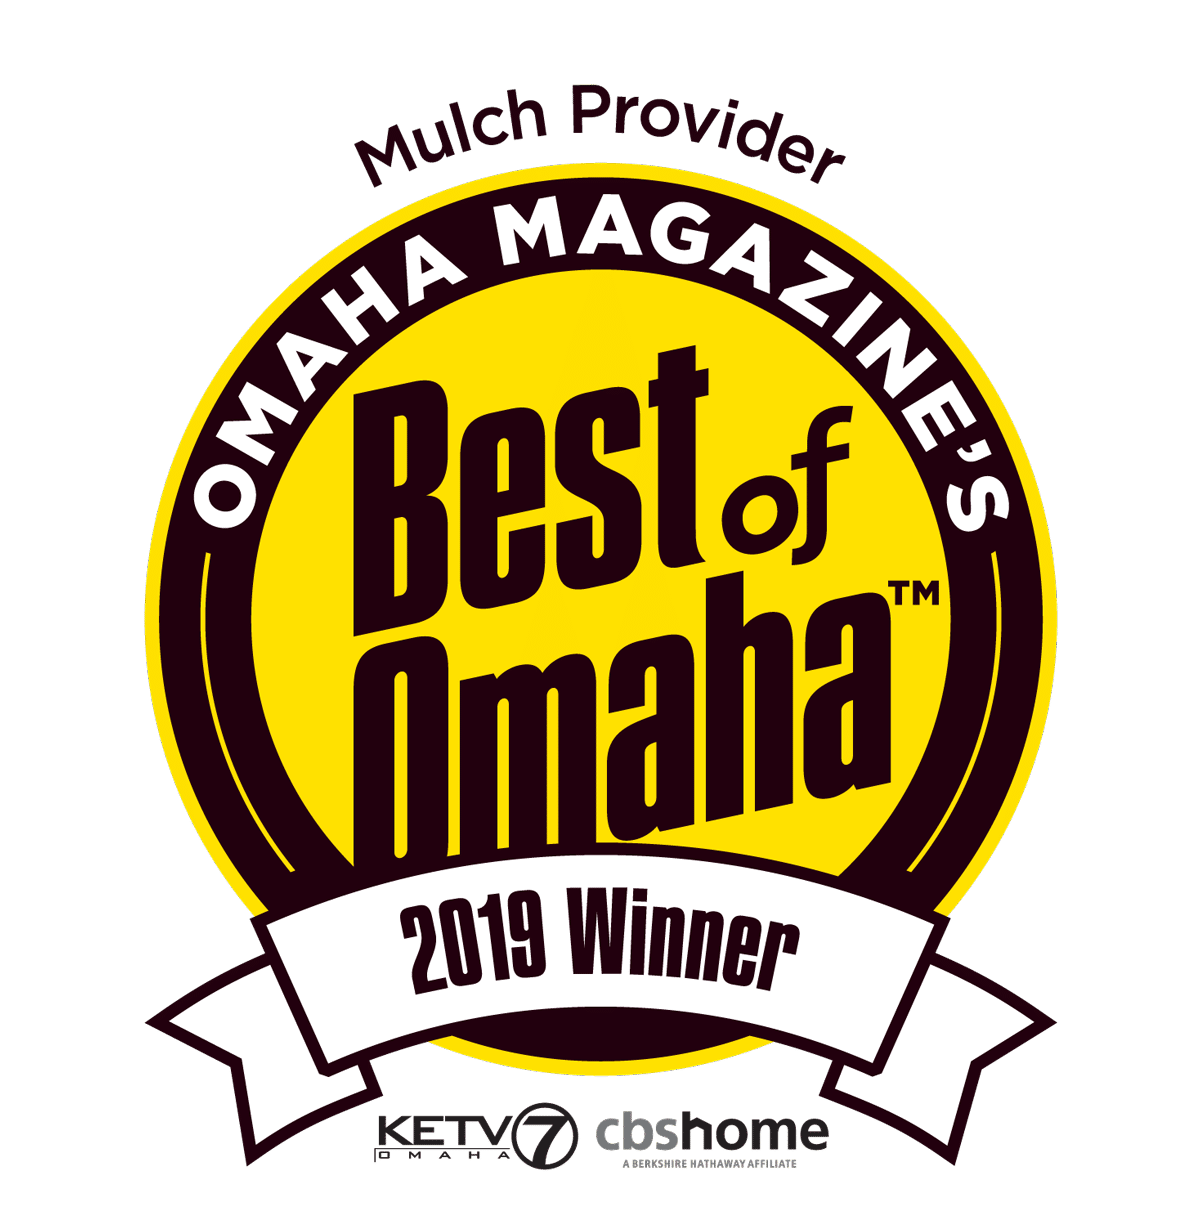 2019 Winner - Mulch Provider